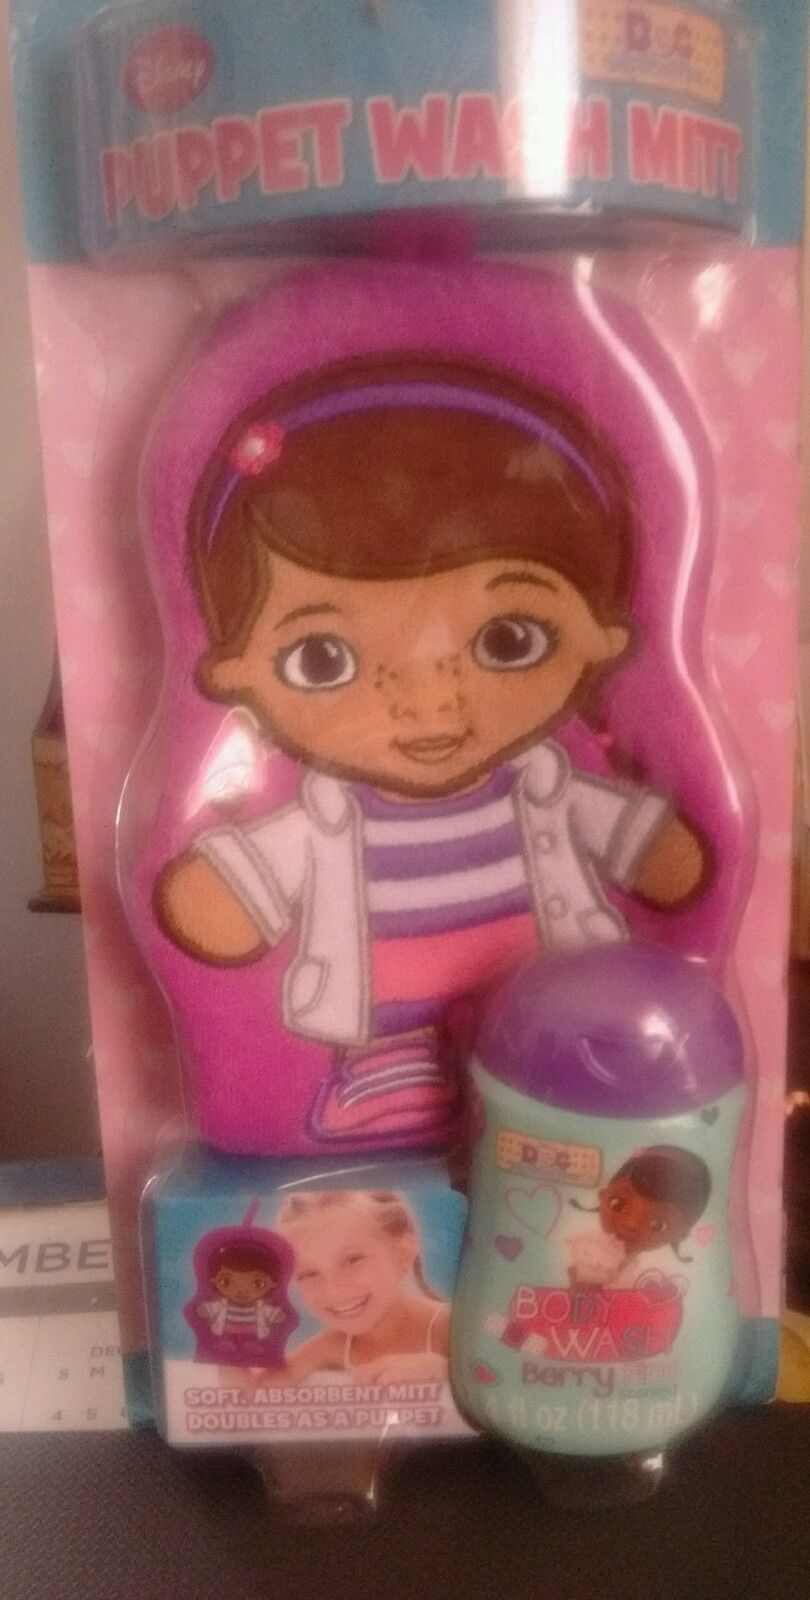 Primary image for Doc McStuffins Wash Mitt Puppet set- Body Wash Included Brand New